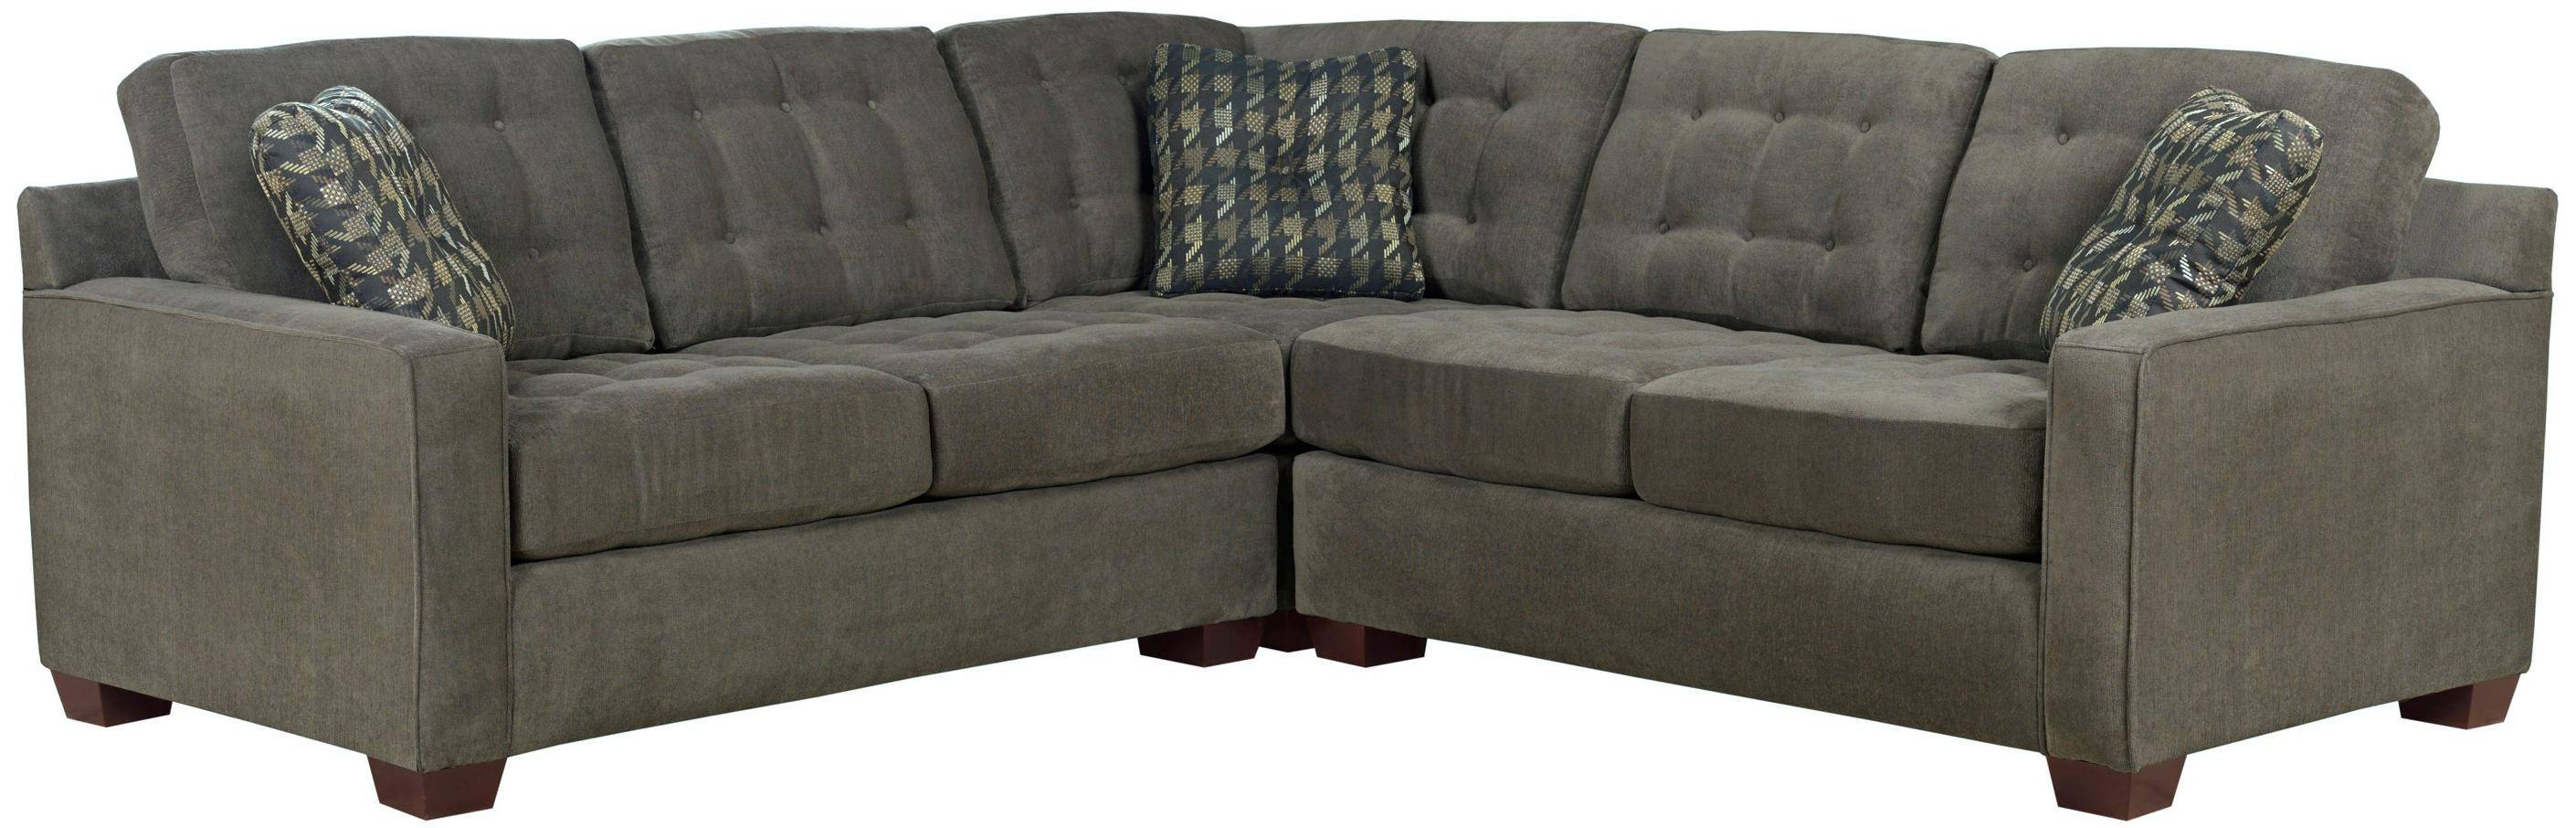 Broyhill Furniture Tribeca Contemporary L-Shaped Sectional Sofa with Broyhill Sectional Sleeper Sofas (Image 8 of 15)